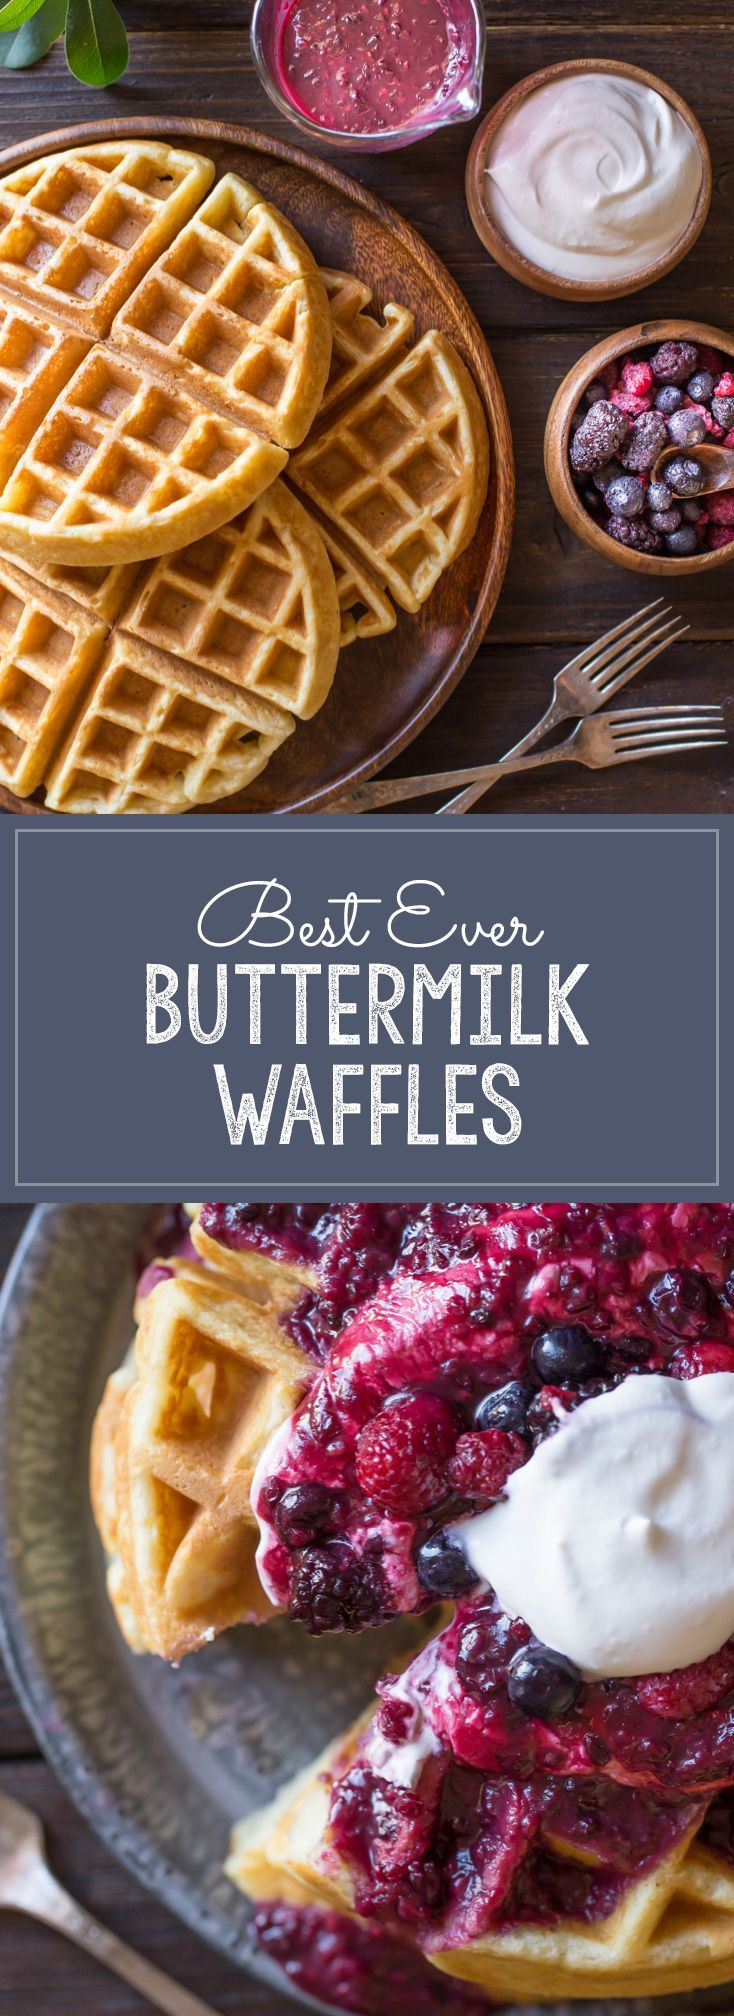 Best ever buttermilk waffles all you need to know to